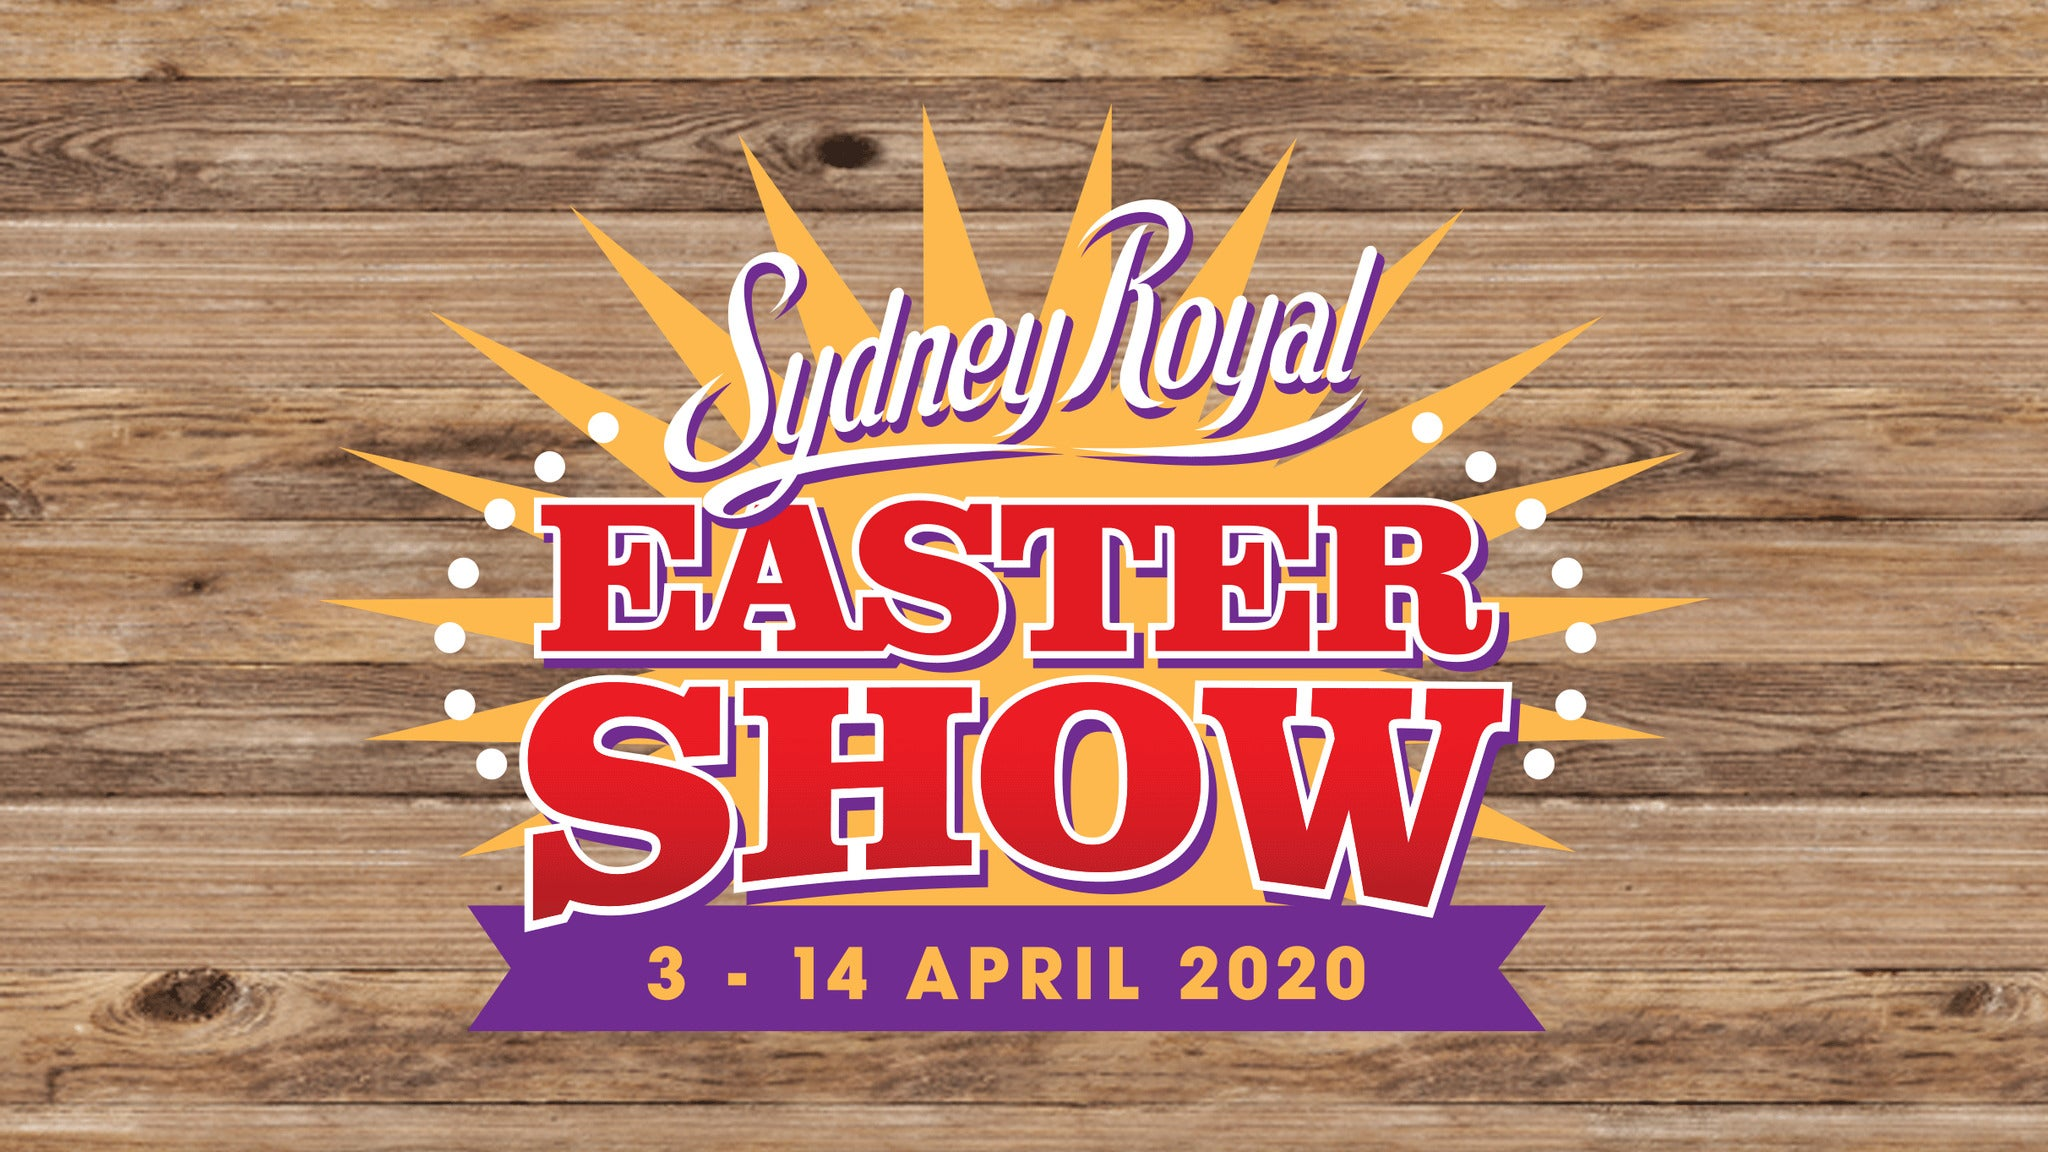 Sydney Royal Easter Show - Seniors' Day ShowLink